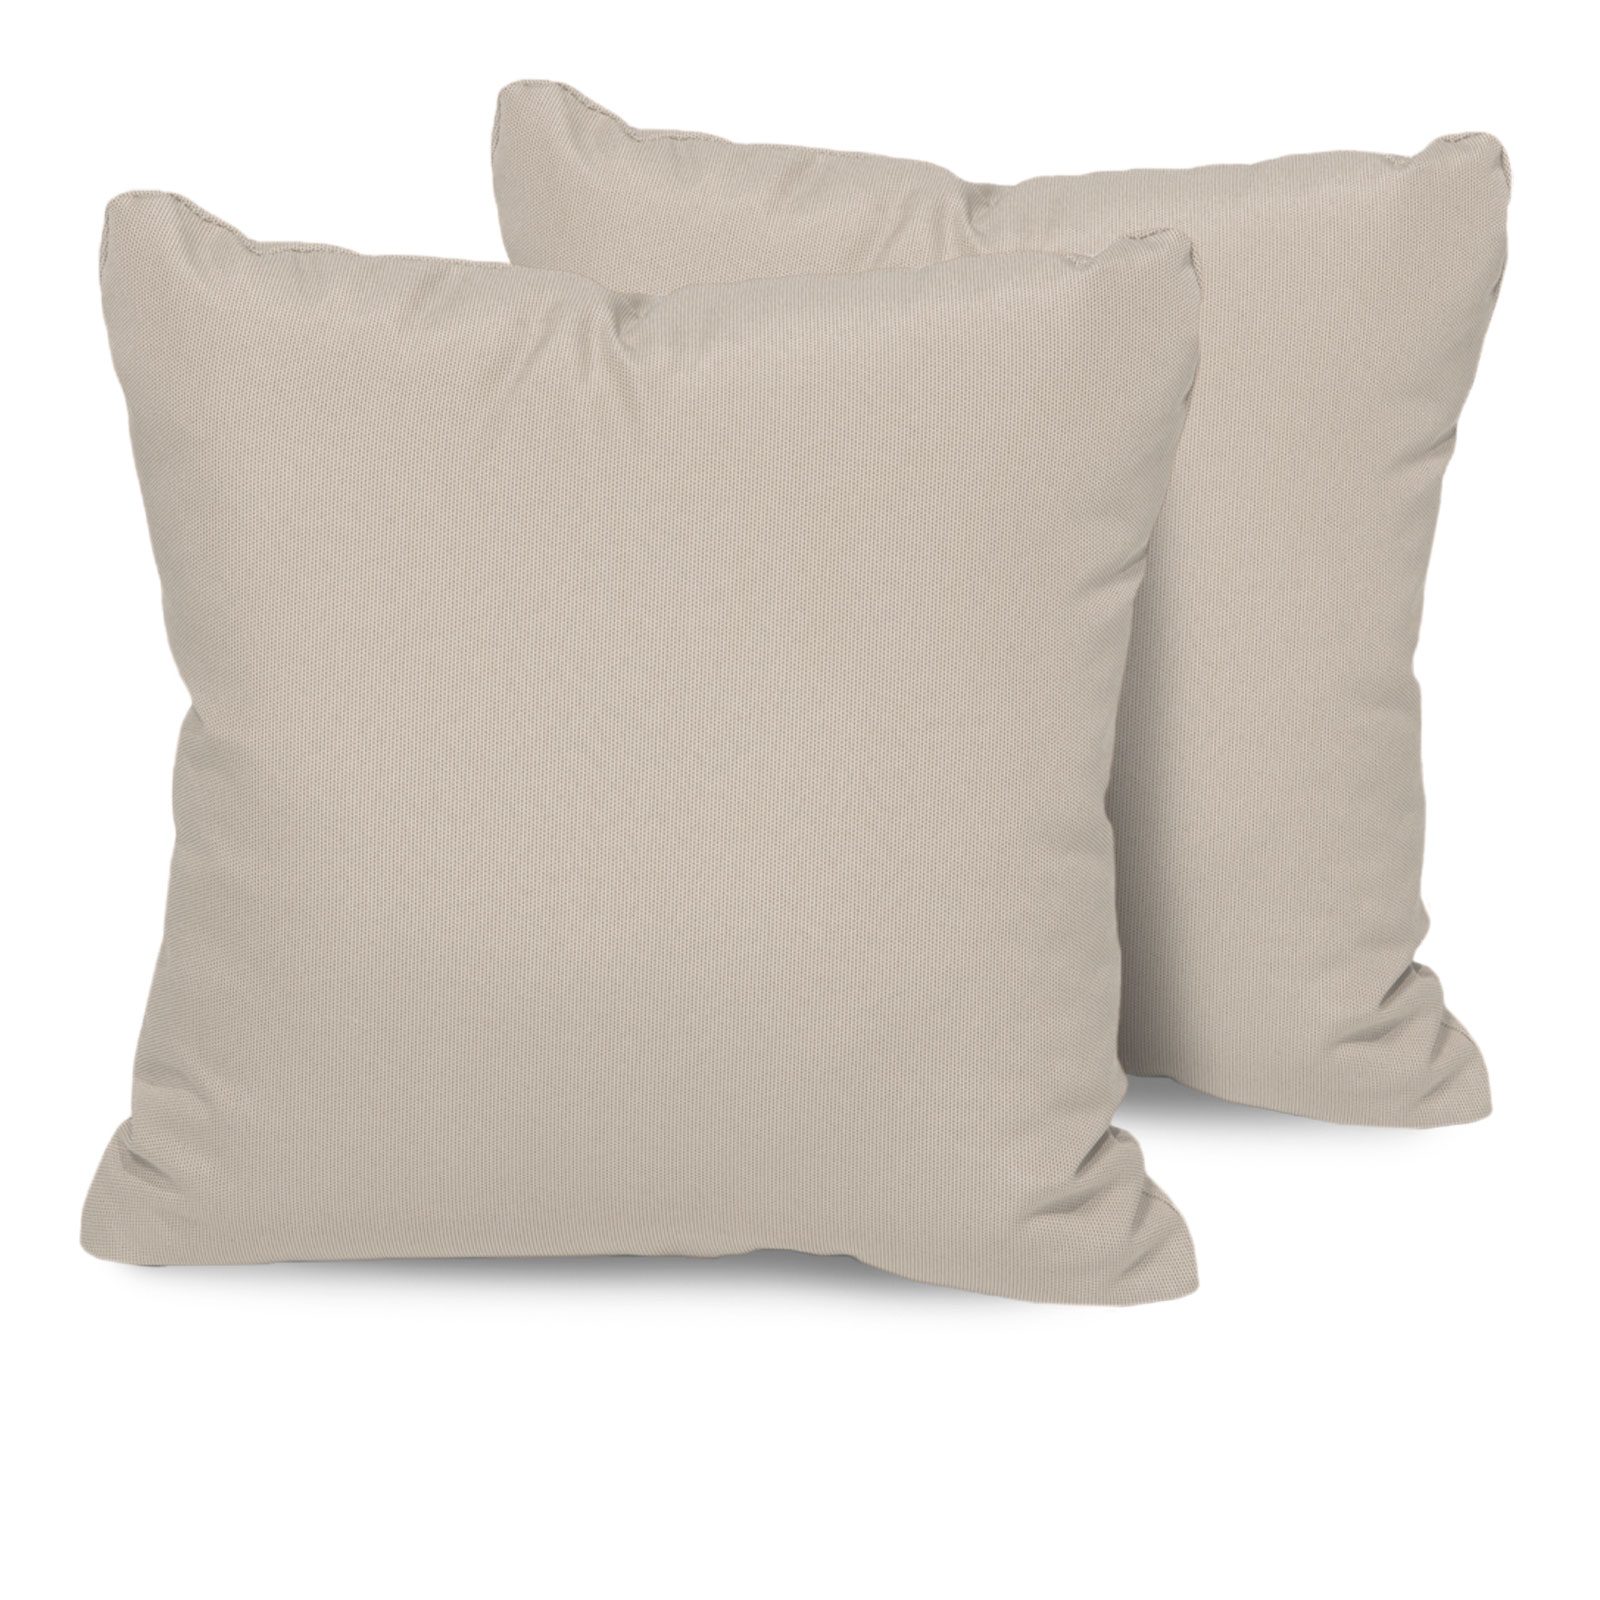 Beige Outdoor Throw Pillows Square Set of 2 by TK Classics